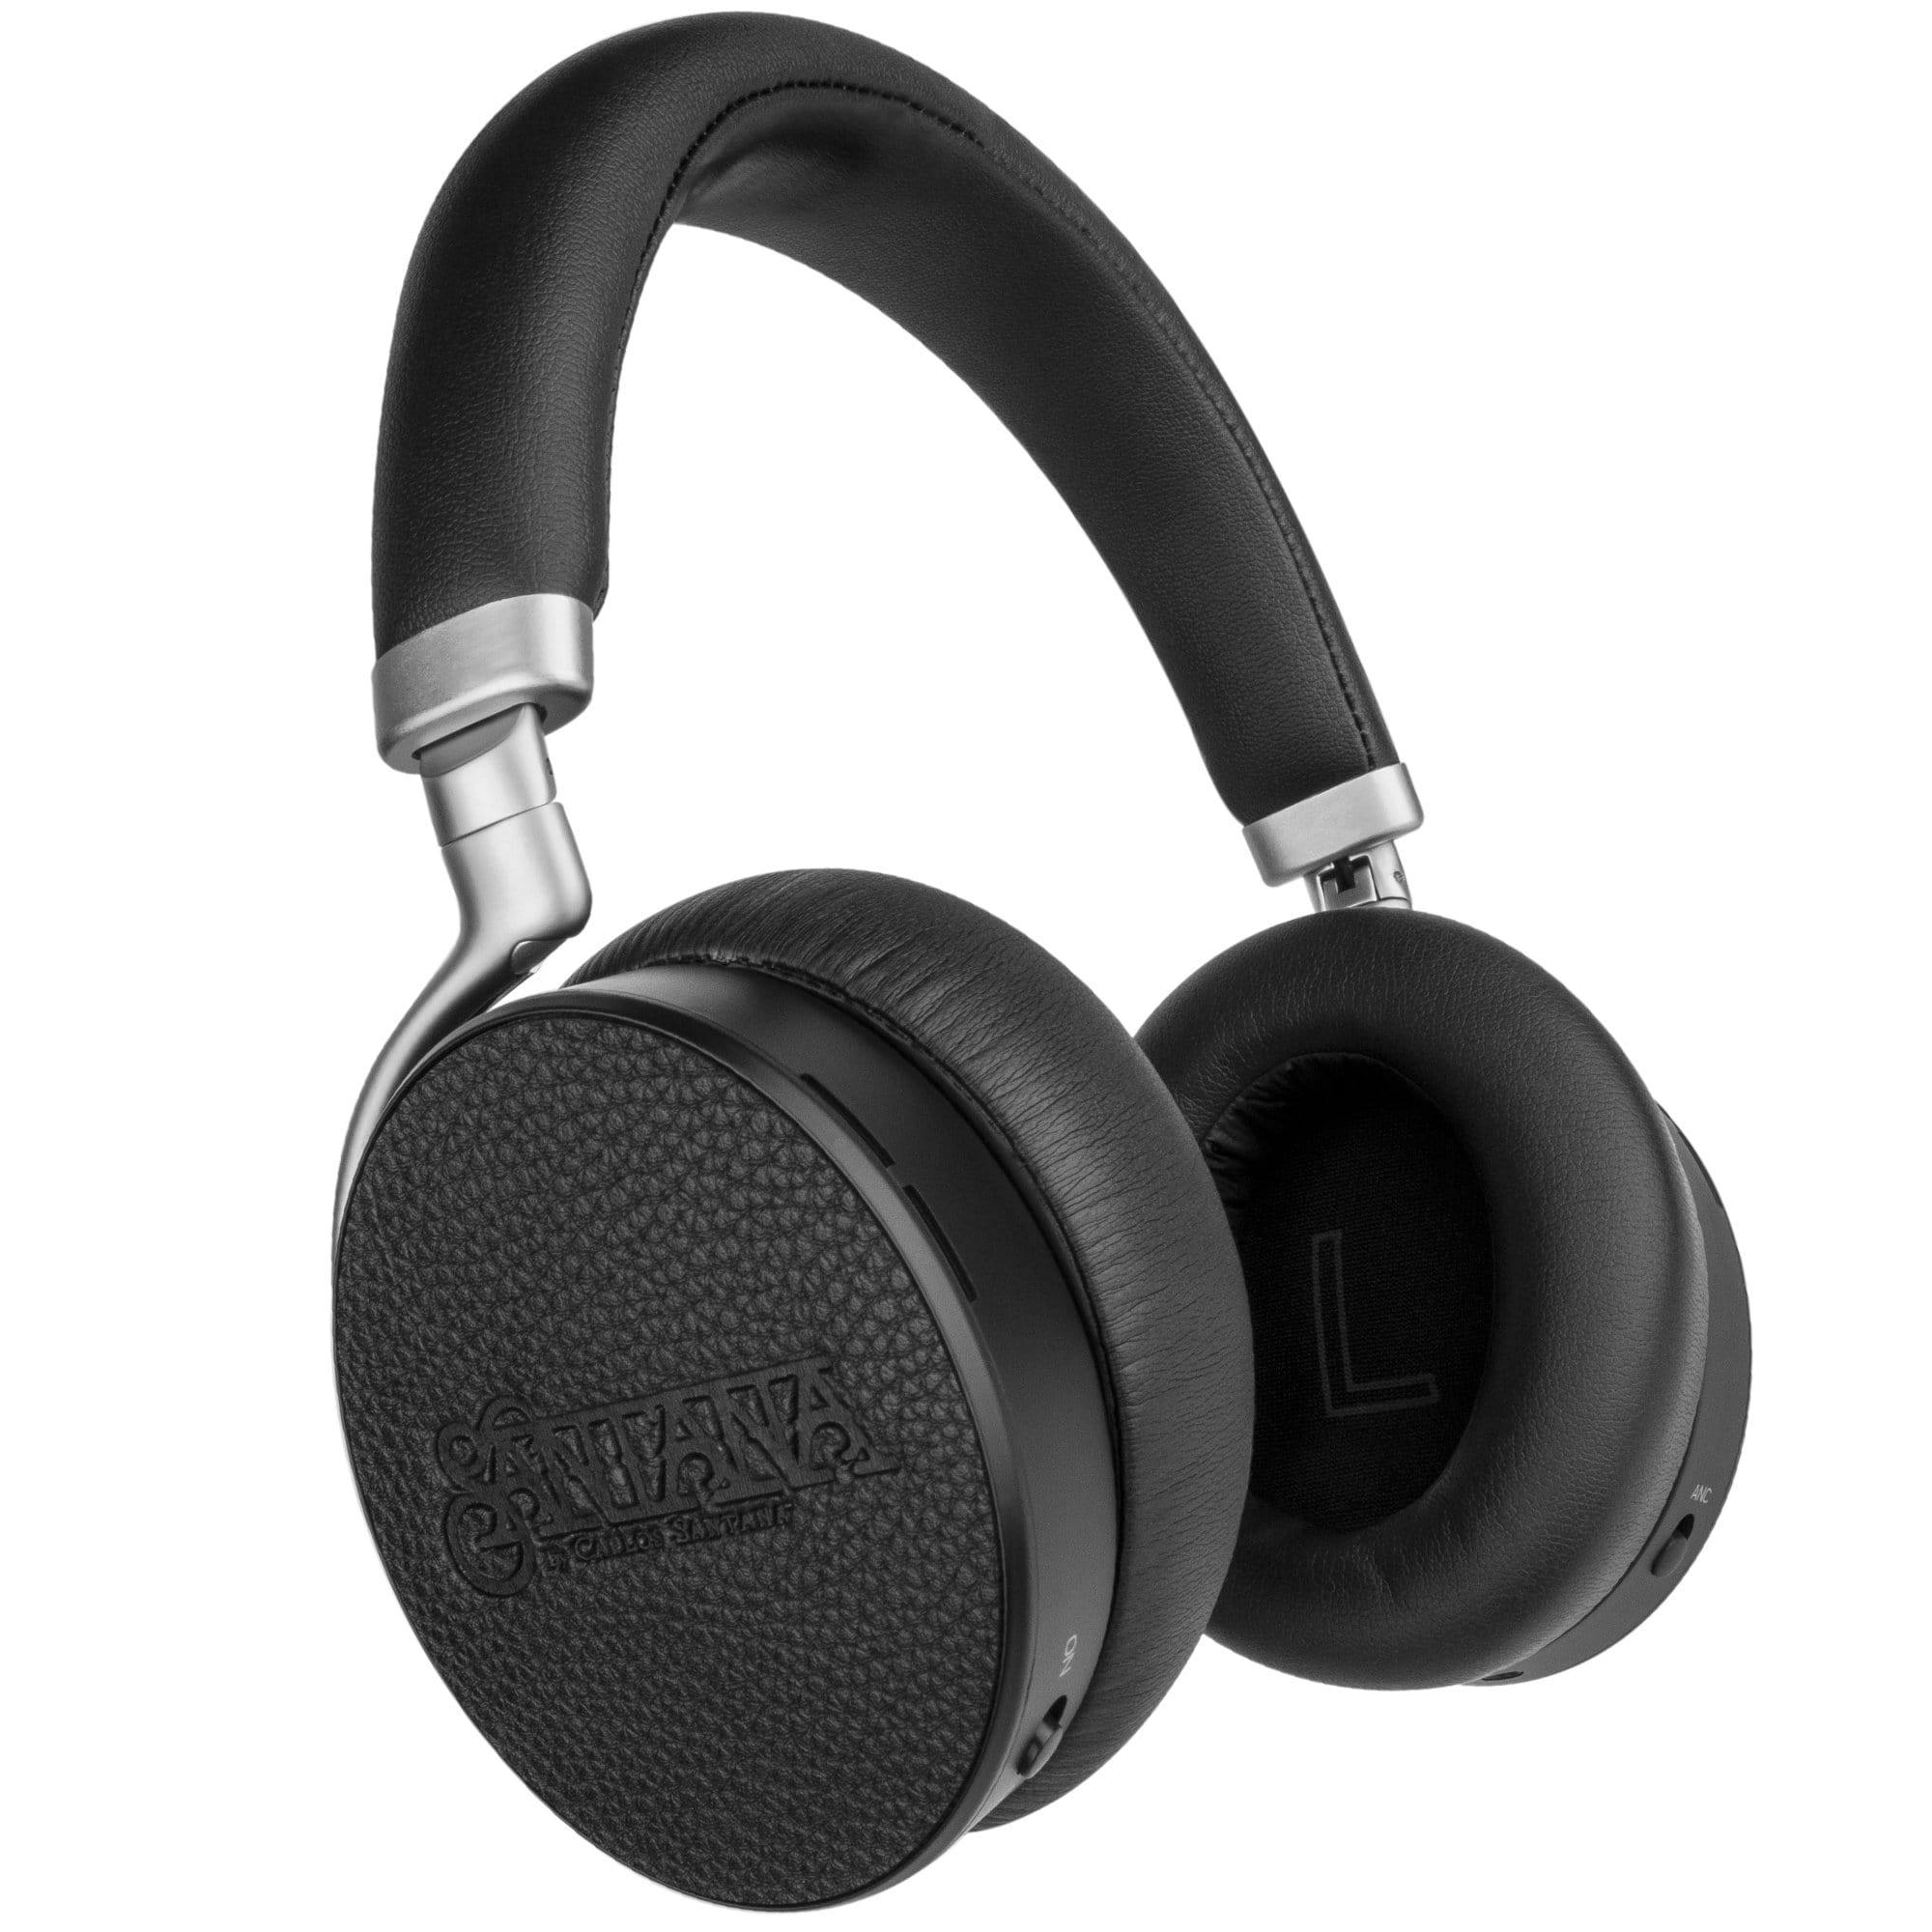 Santana Noche Active Noise Cancelling Bluetooth Headphones